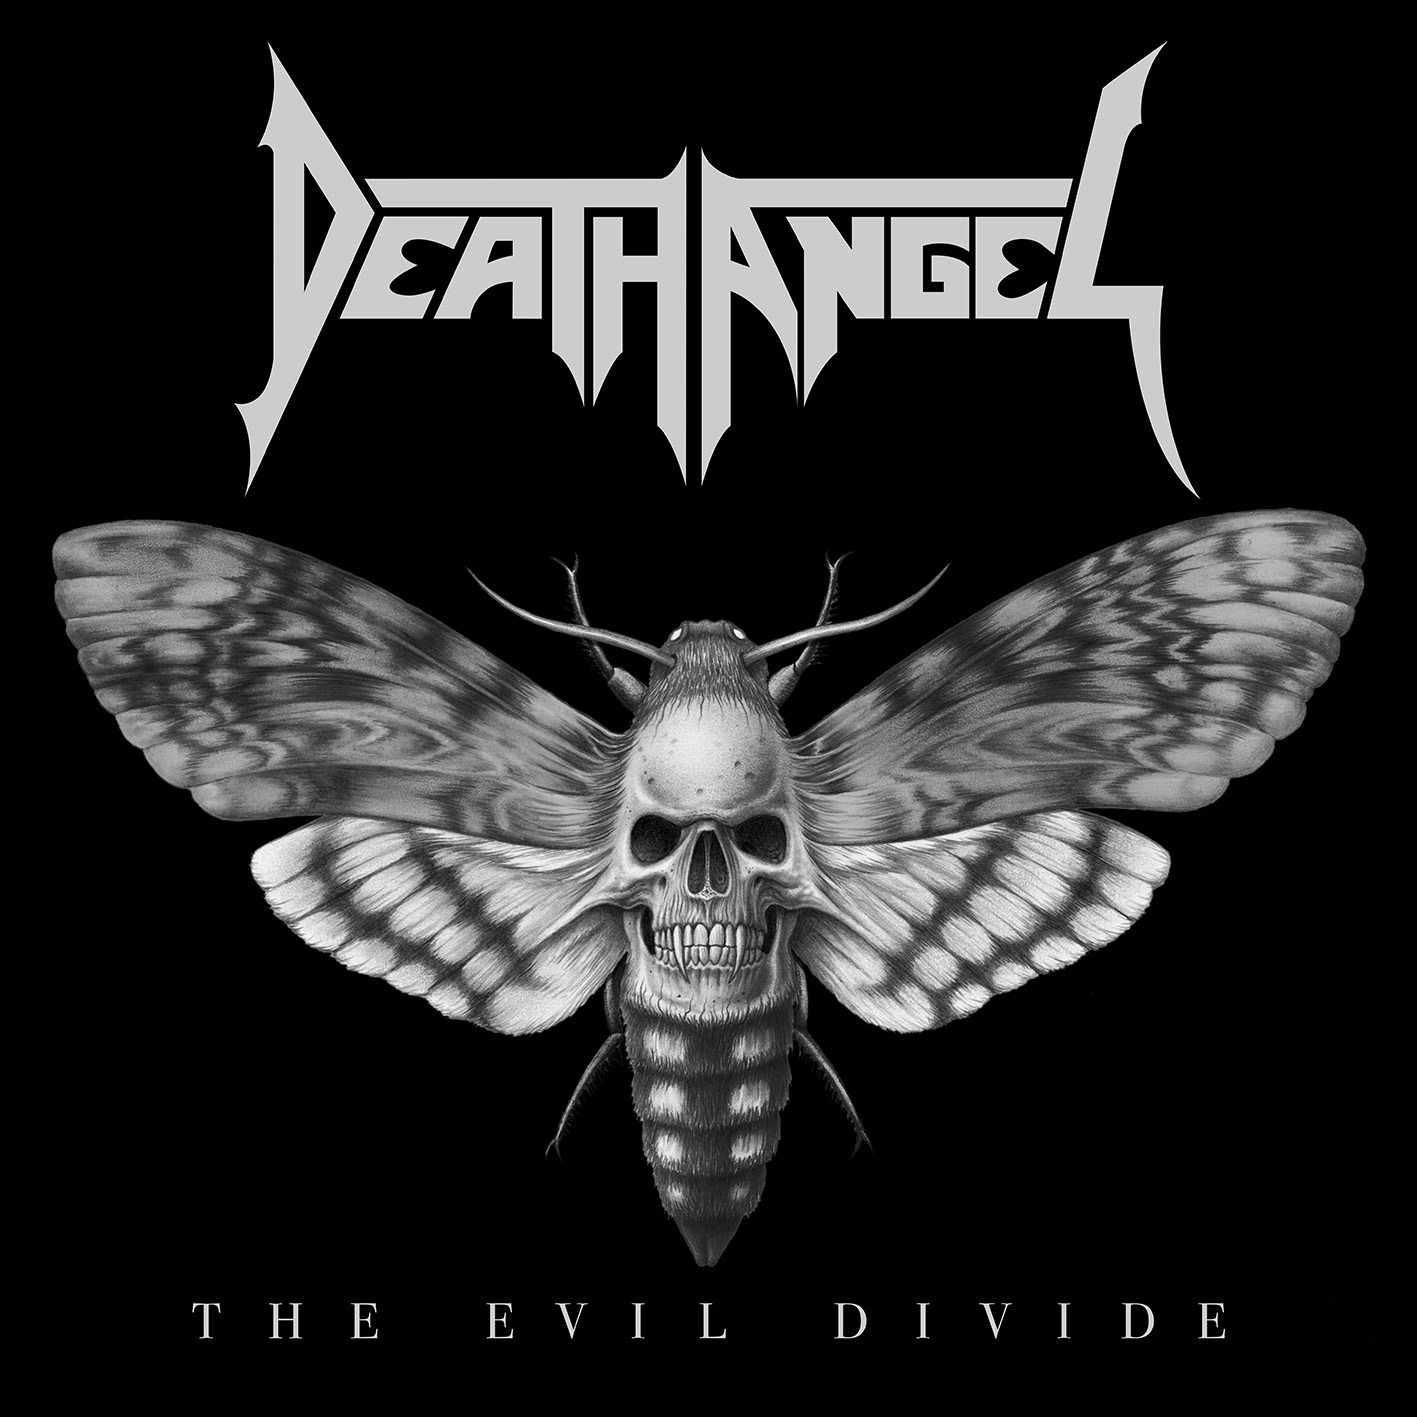 Rock Reviews dirt image: http://www.angrymetalguy.com/wp-content/uploads/2016/05/Death-Angel_The-Evil-Divide.jpg